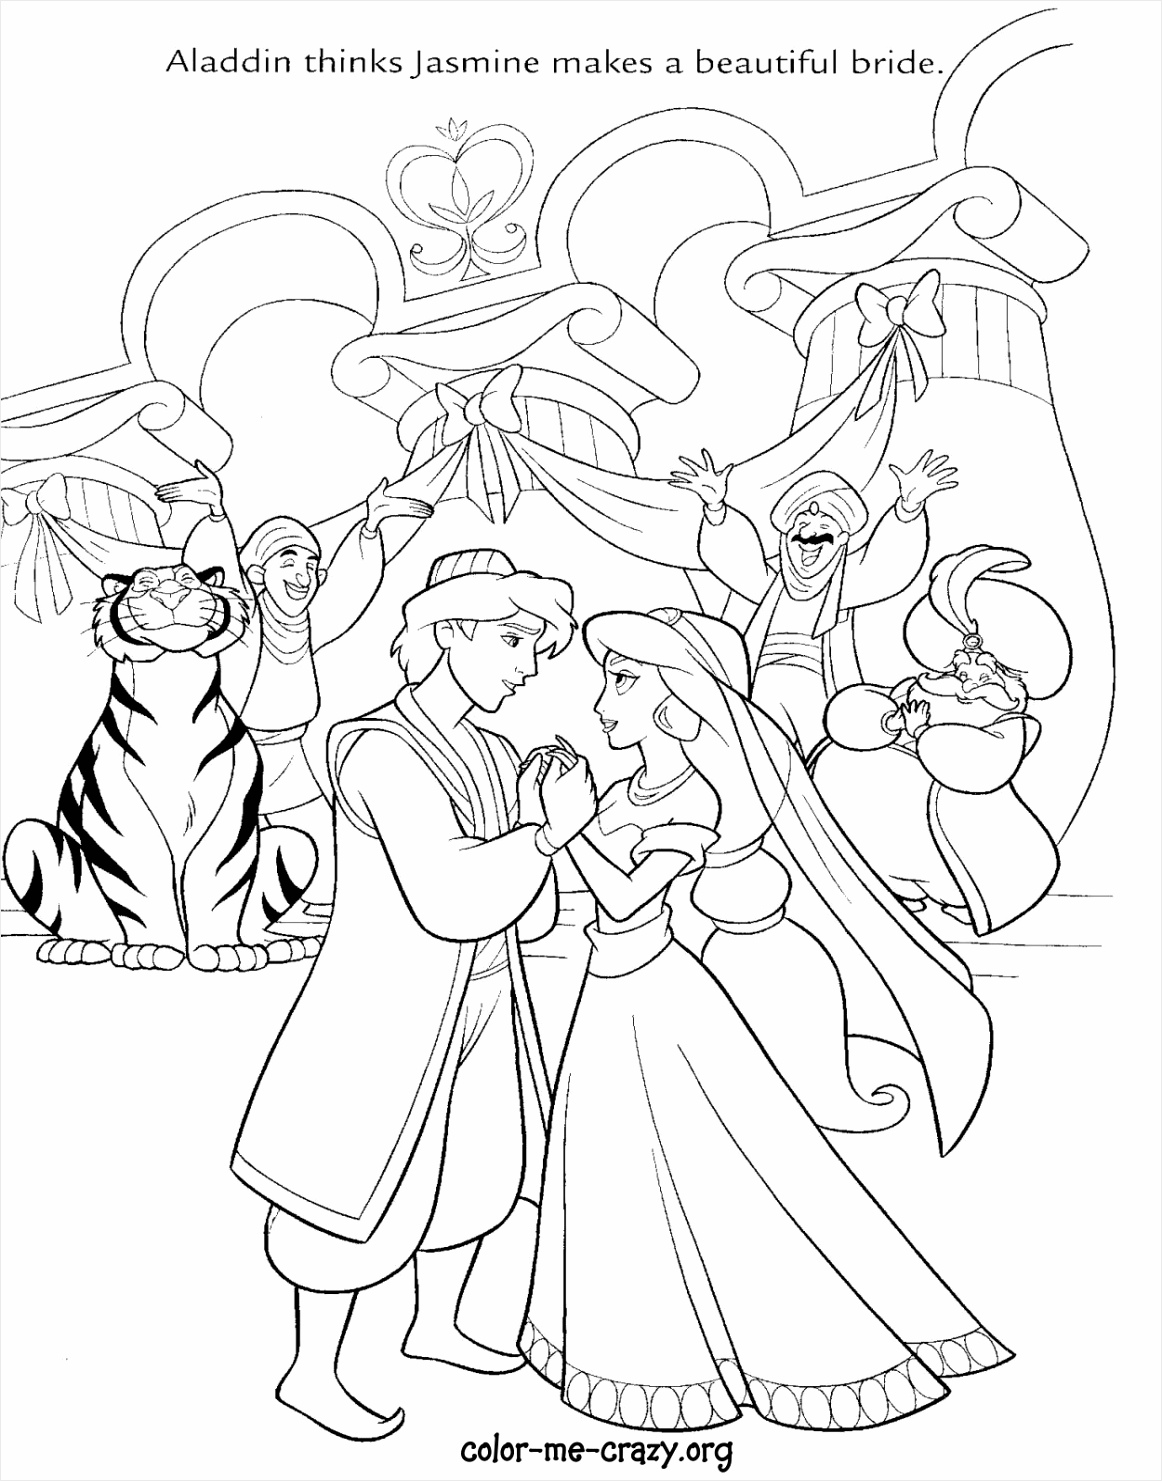 e842fda751c aaa6b ebdde easy disney wedding coloring pages 5116 disney wedding coloring 1250 1576 puiat